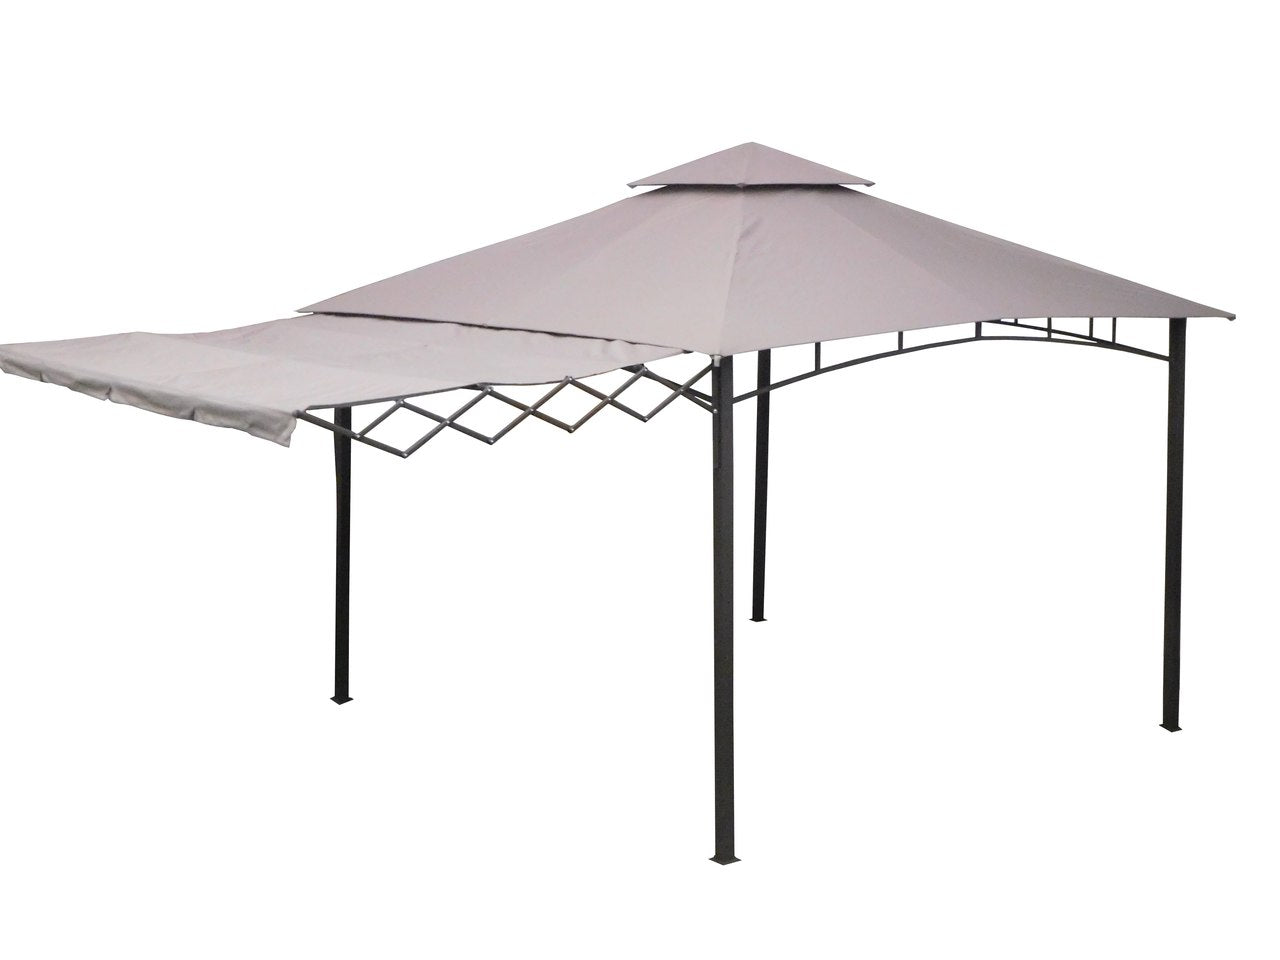 Gazebo 3.3m x 3.3m with Retractable Awning